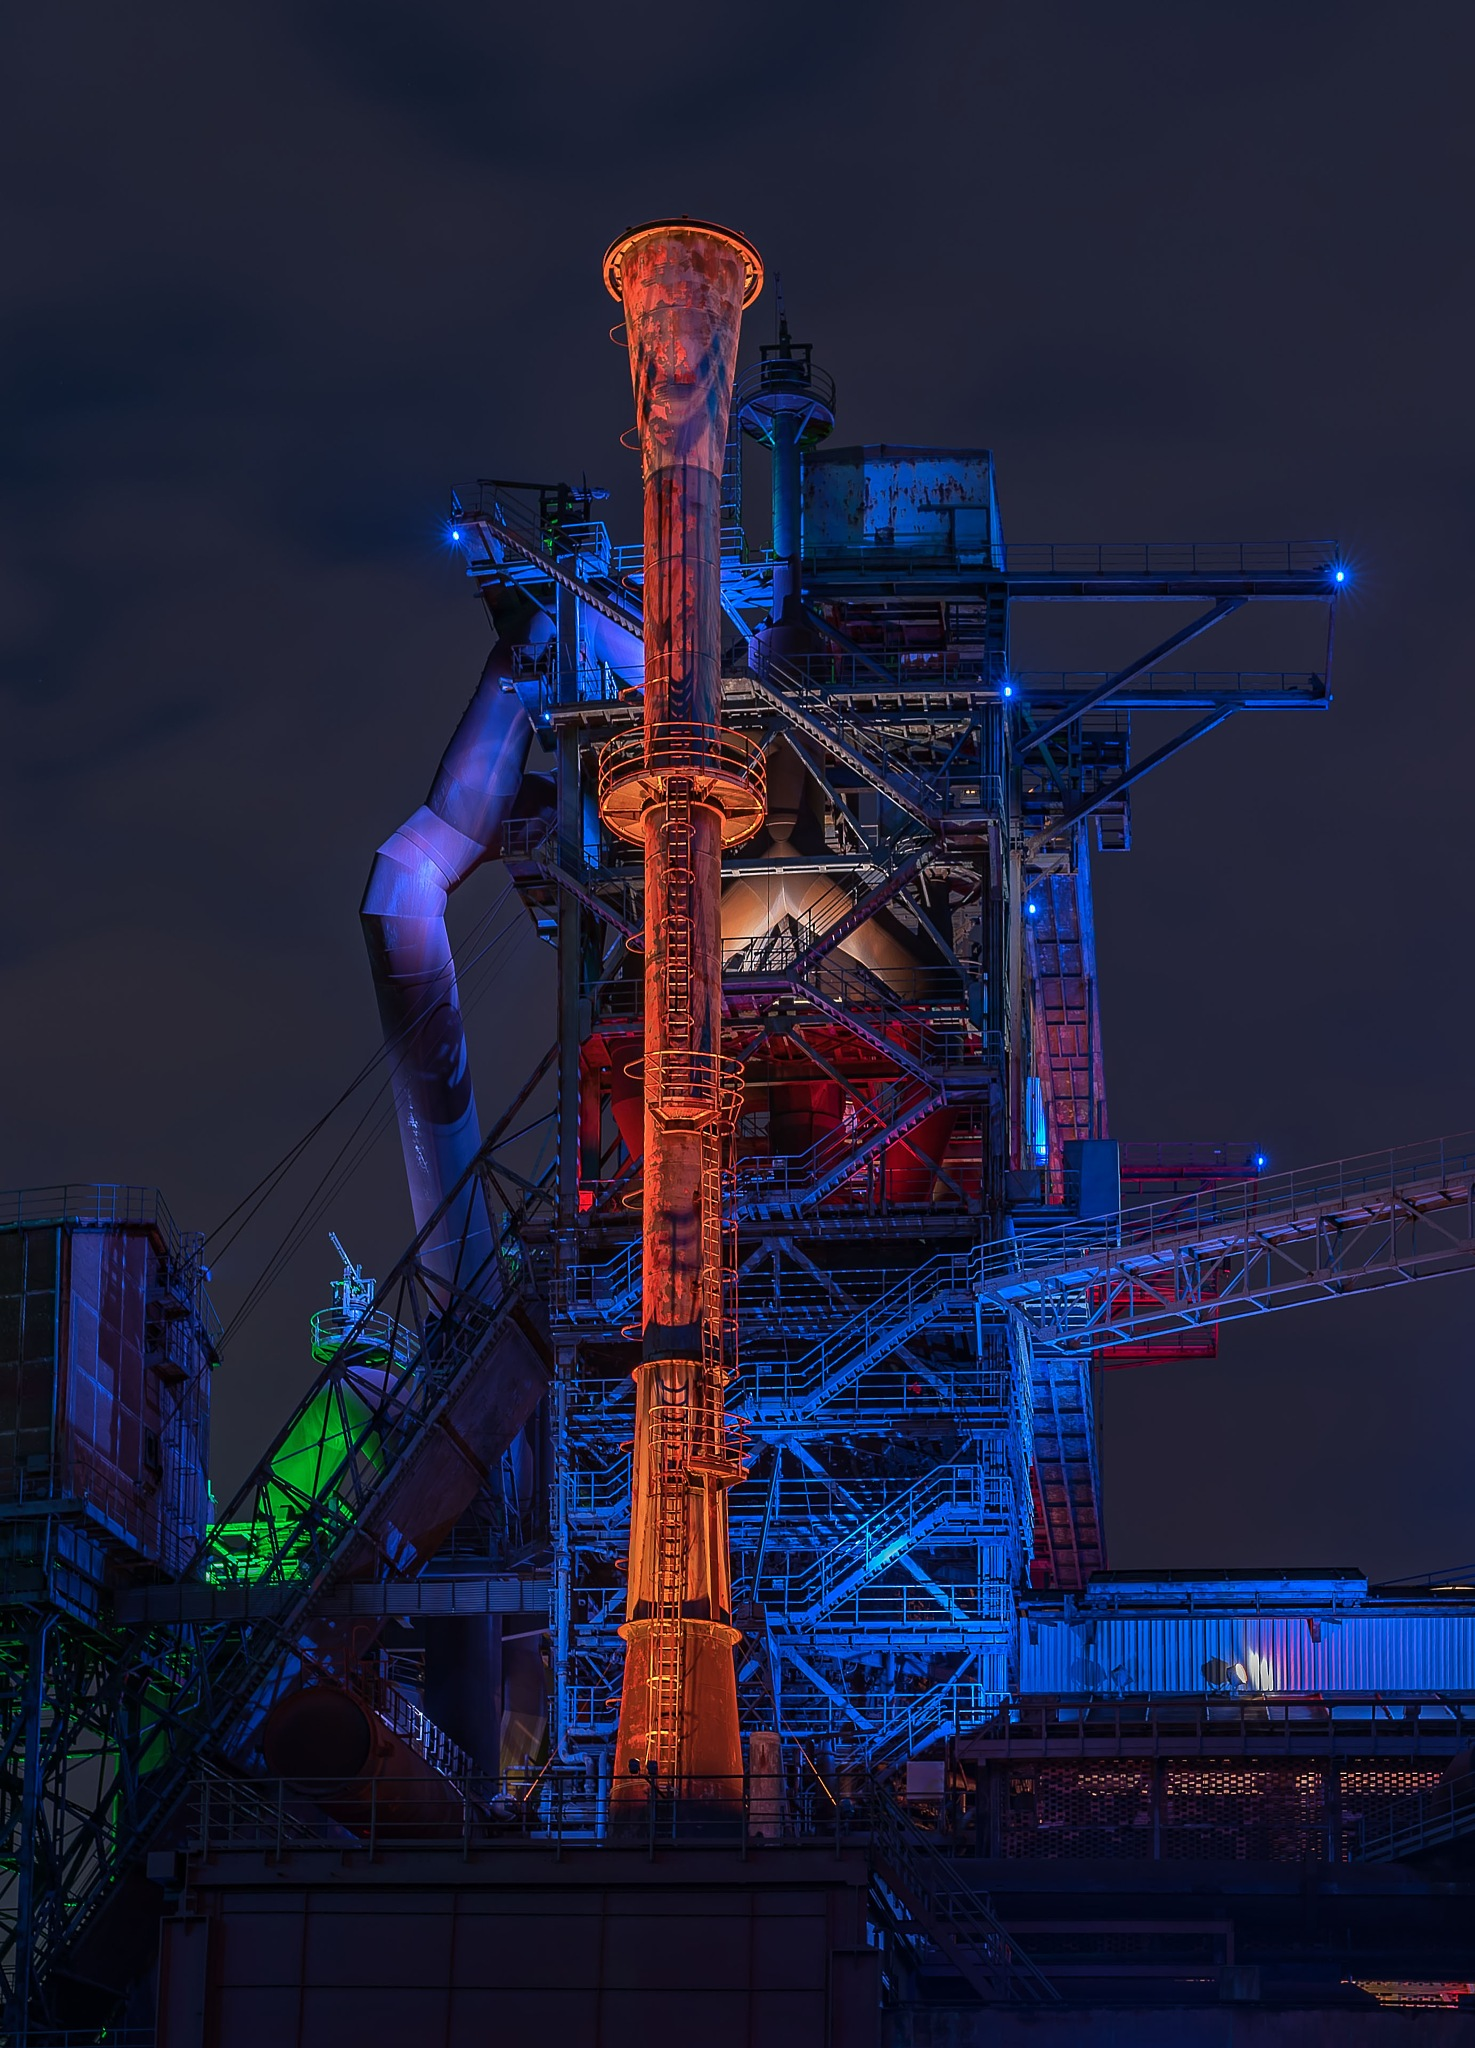 Blast furnace by Andreas Michels